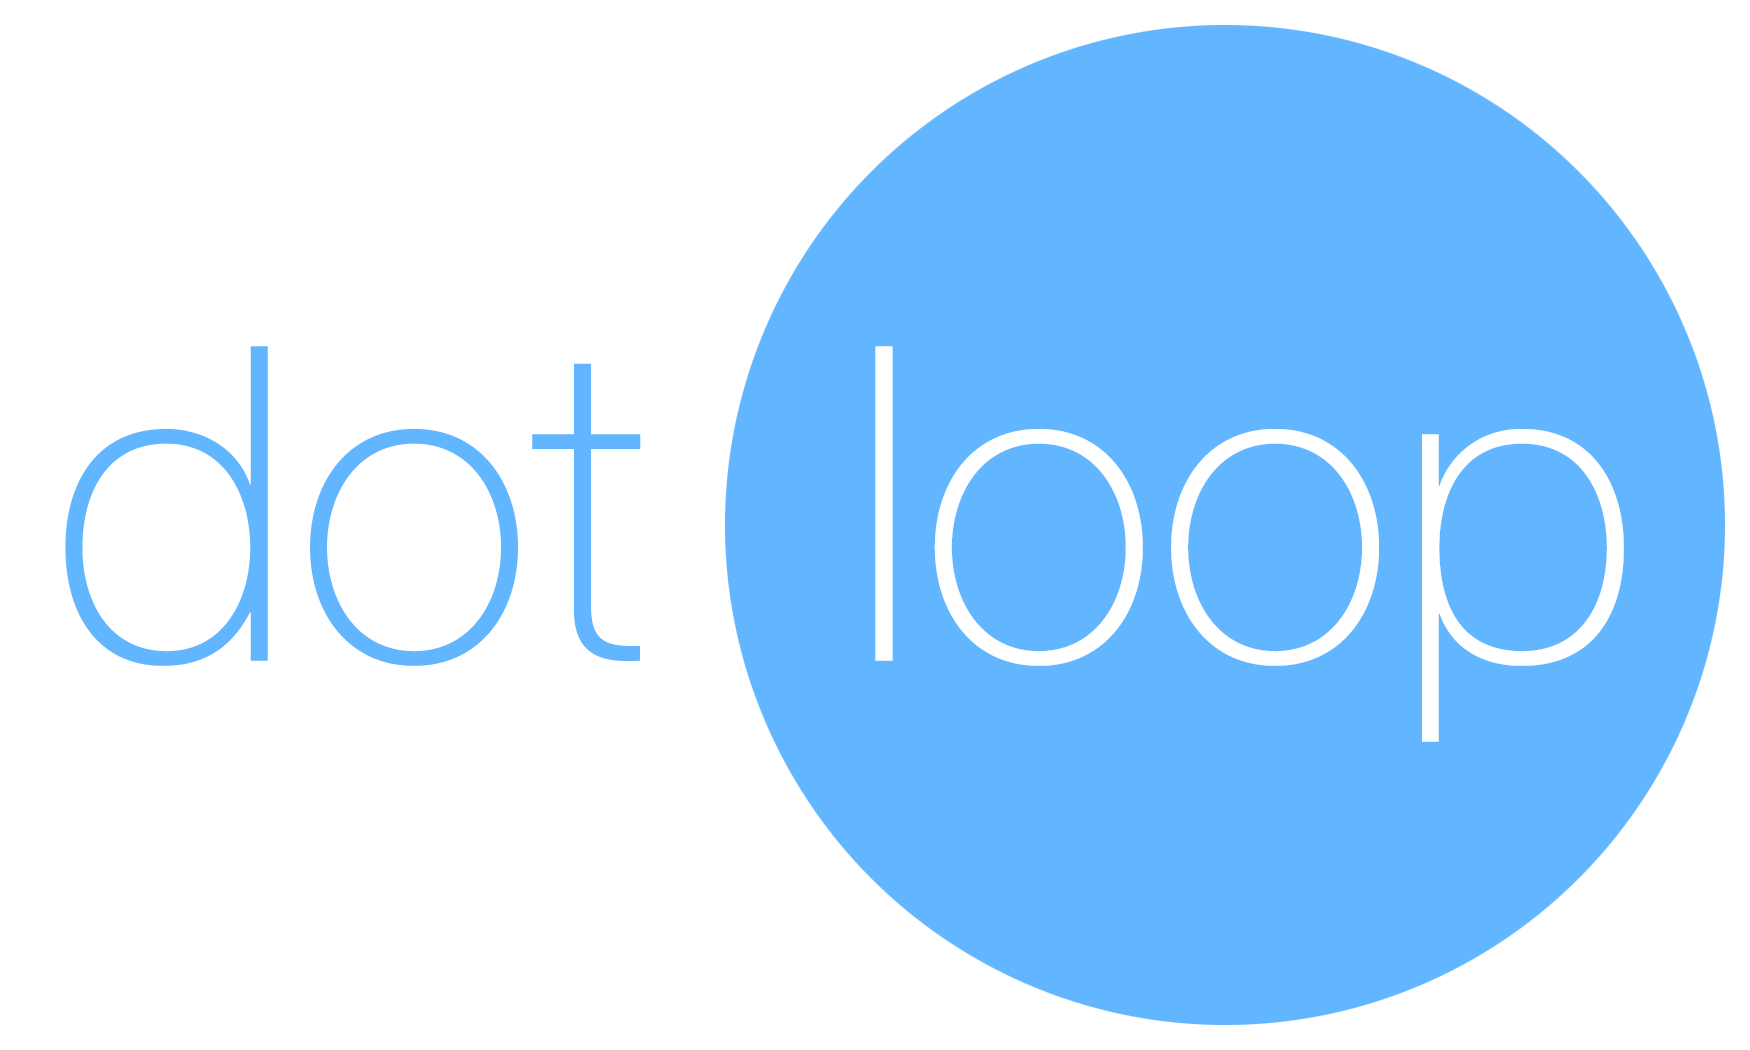 - Dotloop is the leading online e-sign and transaction management system in real estate, simplifying agent and client interactions with digital forms.